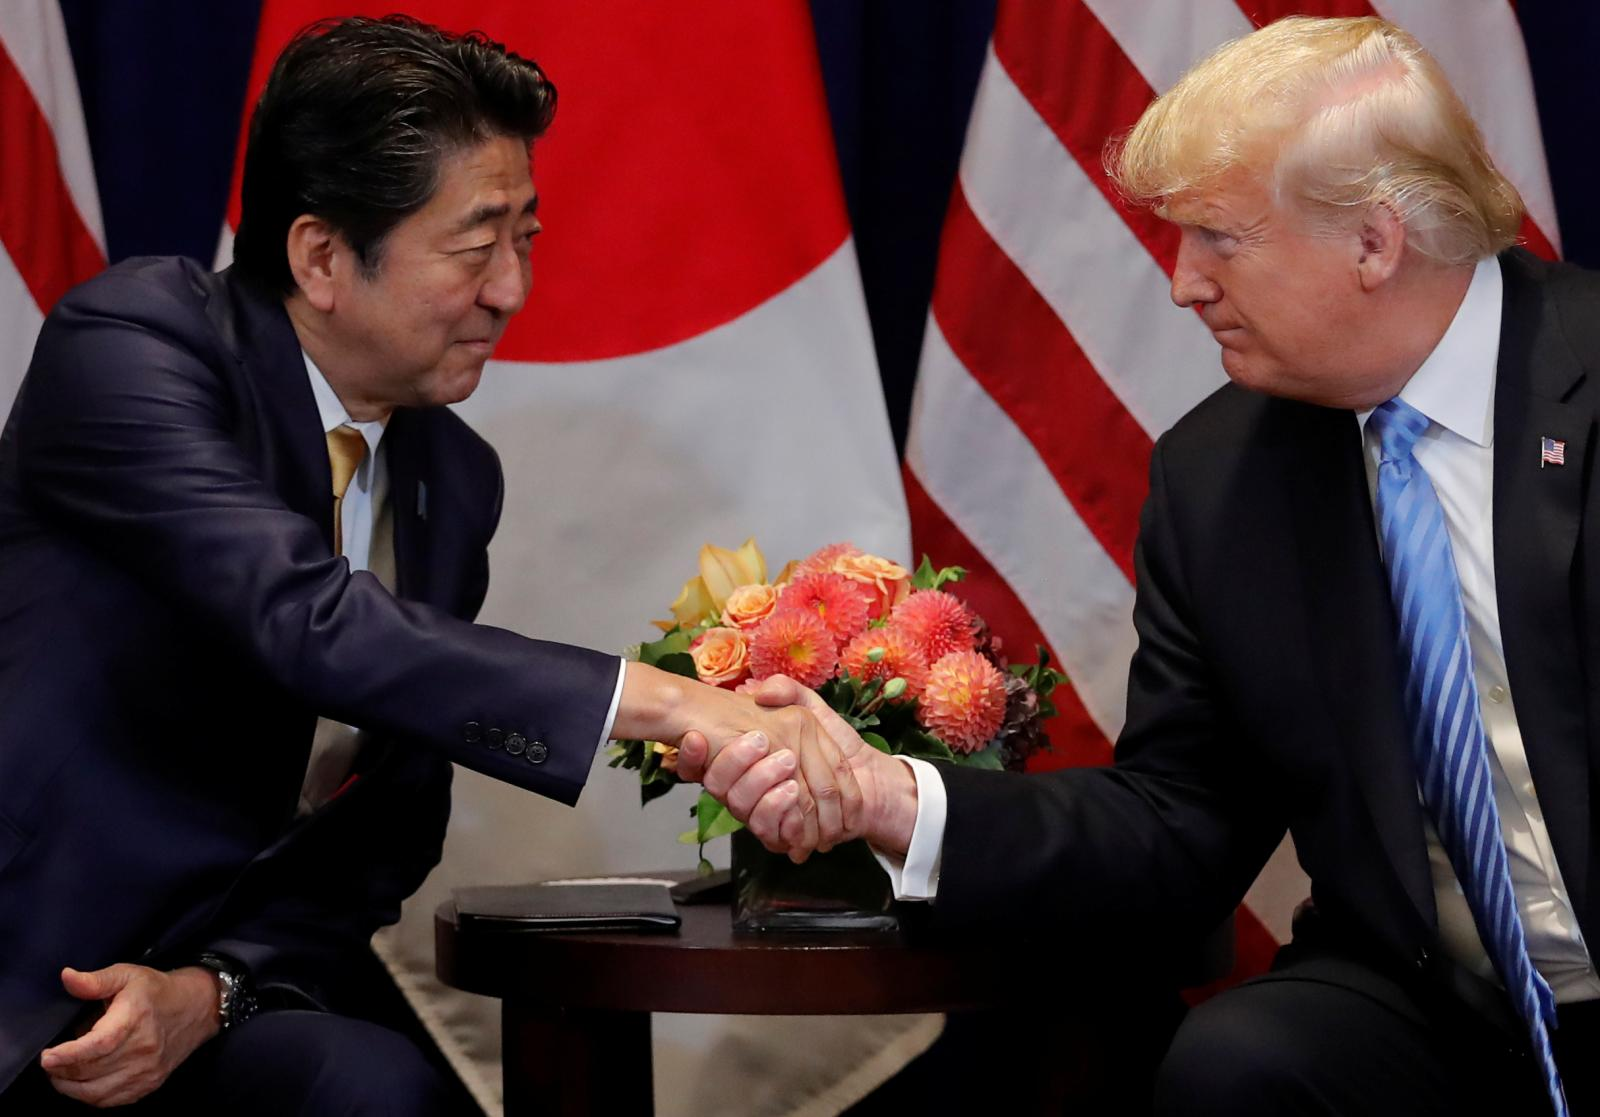 Japan's PM nominated Trump for Nobel Peace Prize on U.S. request: Asahi